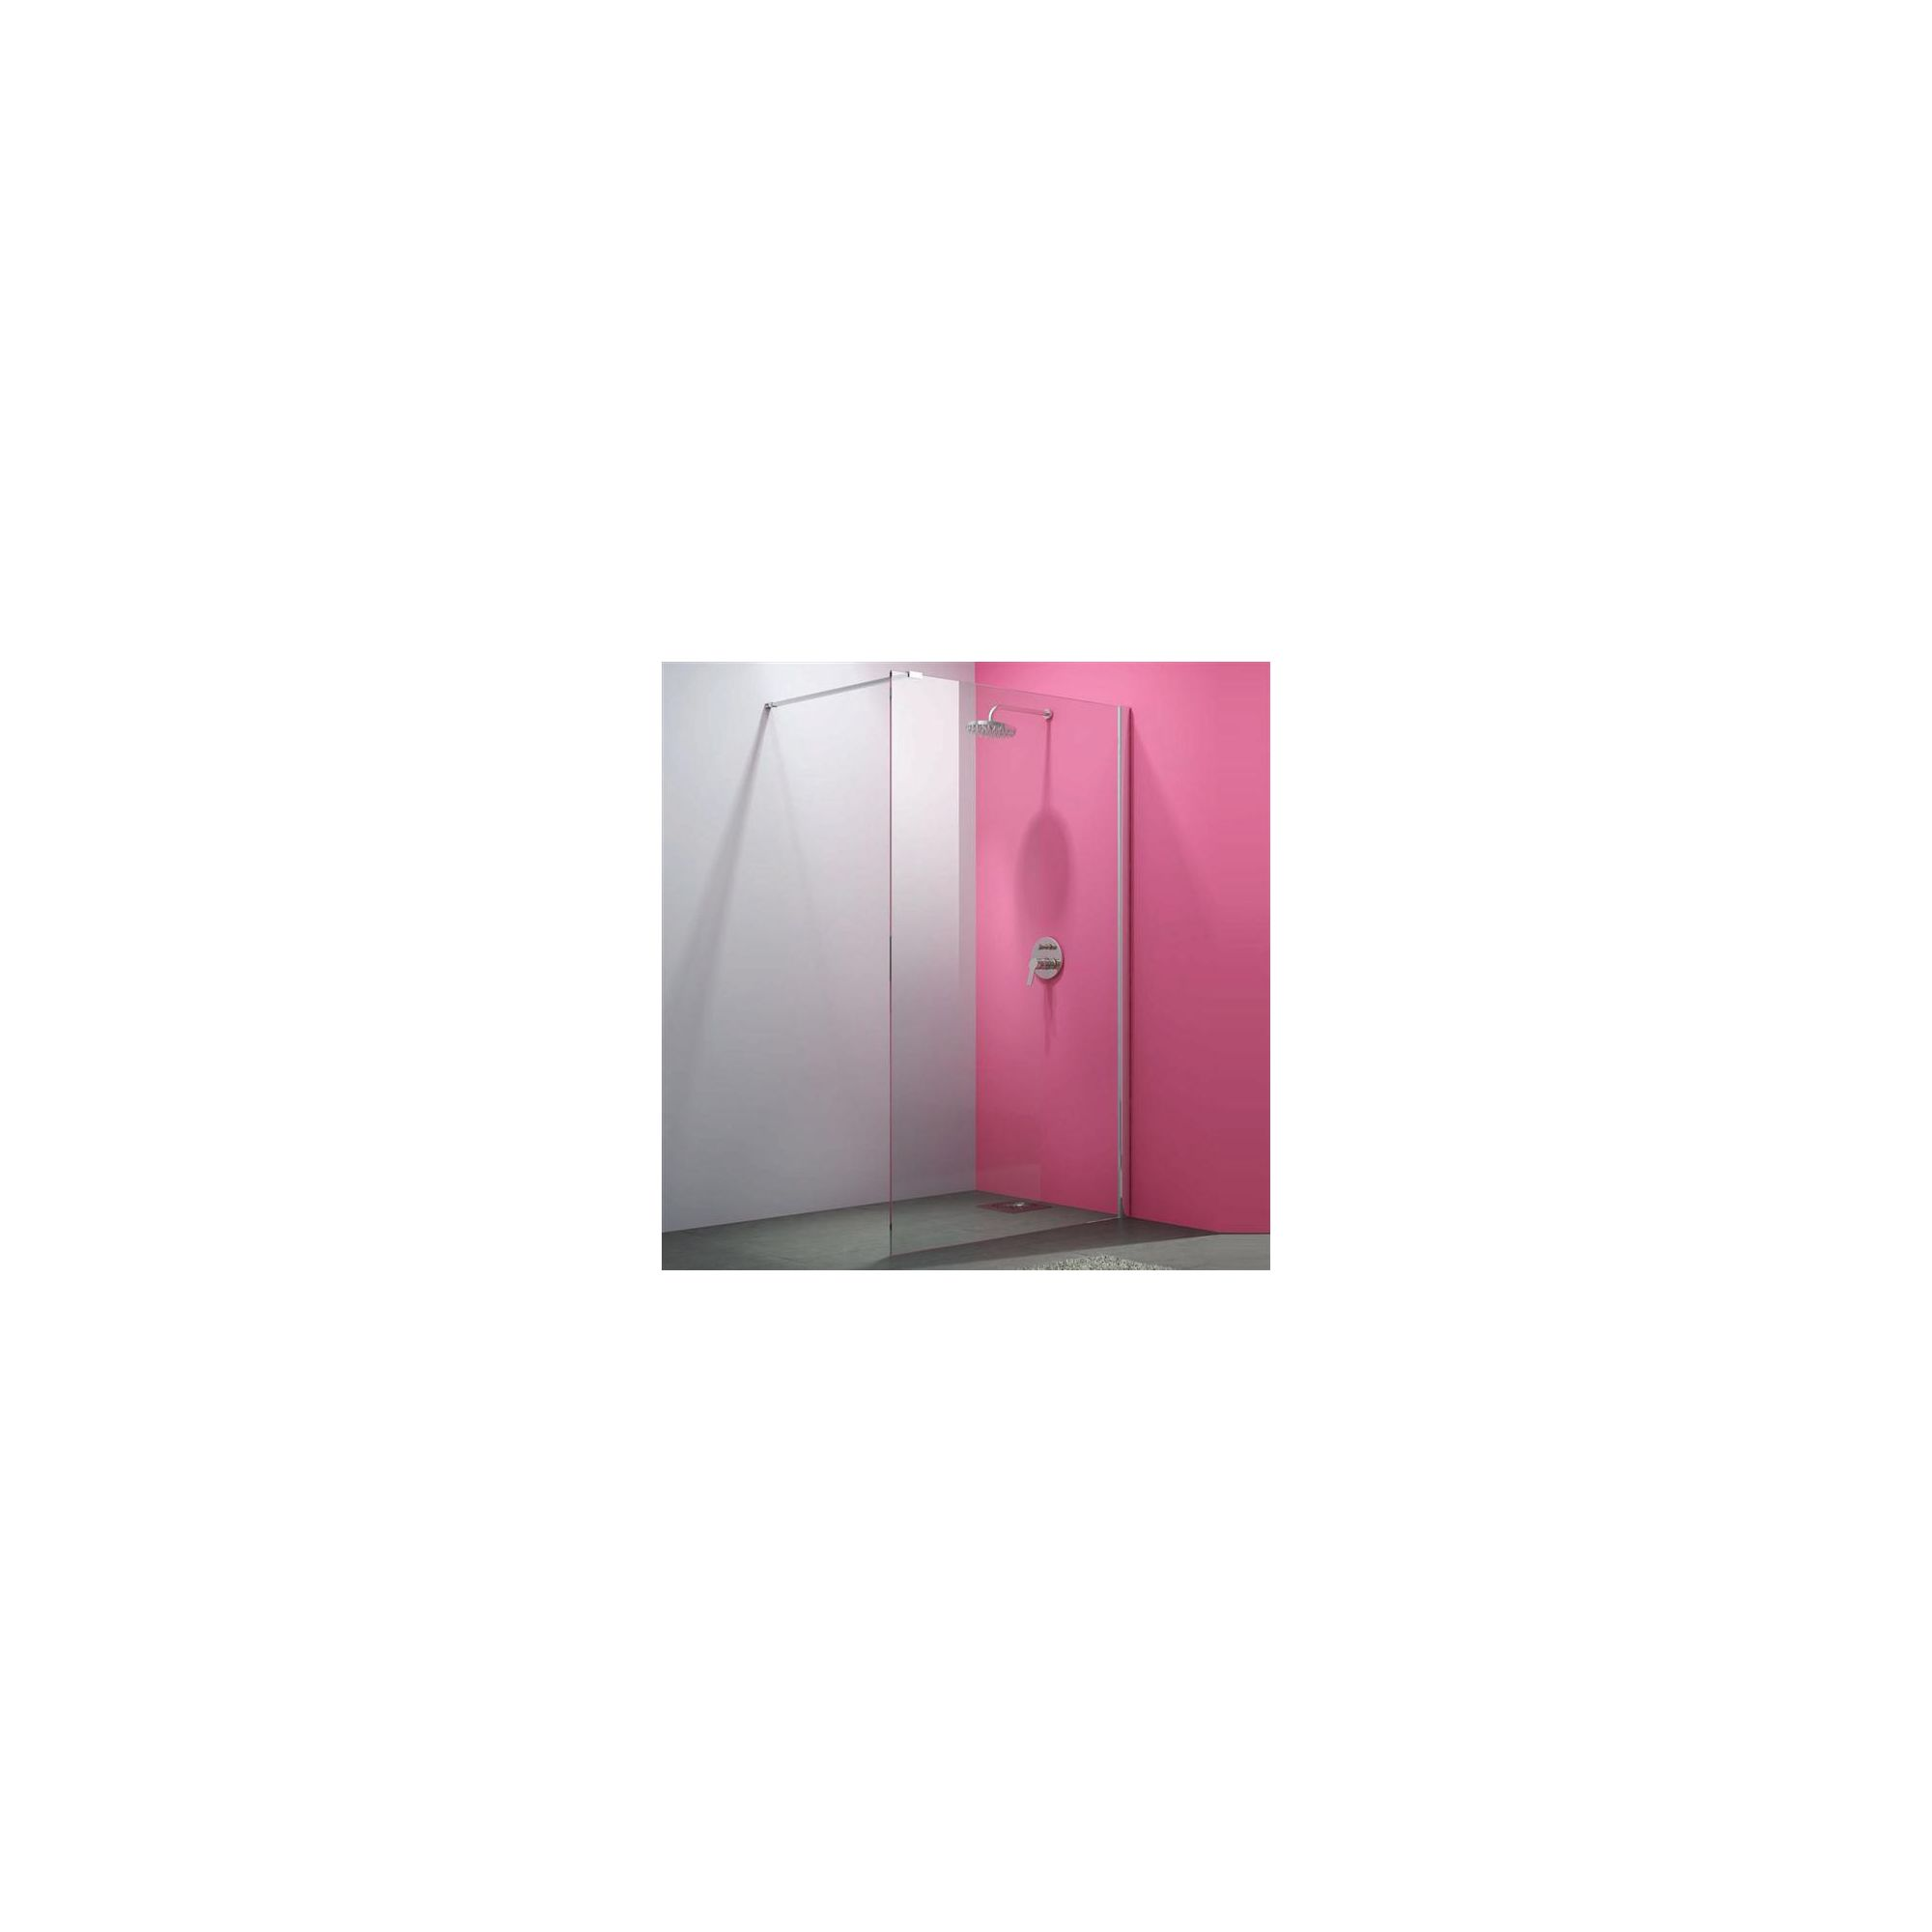 Merlyn Vivid Eight Wet Room Shower Enclosure, 1200mm x 800mm, Low Profile Tray, 8mm Glass at Tesco Direct